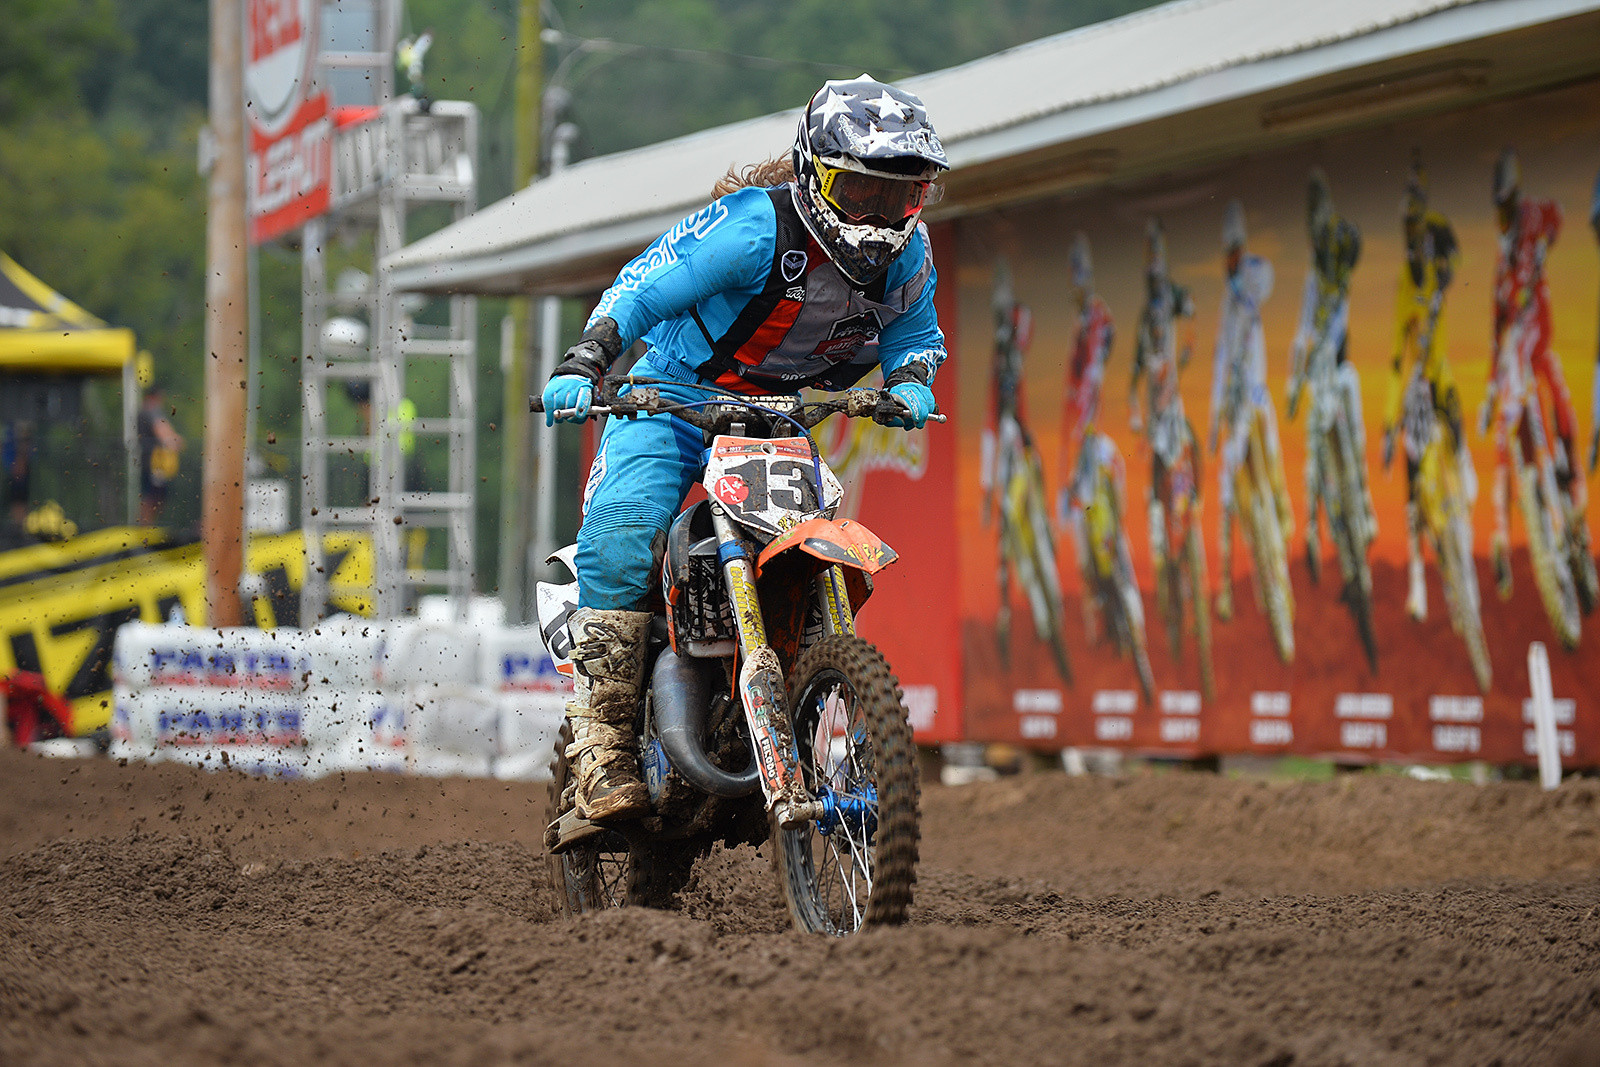 Korie Steede won her first-ever Moto at Loretta Lynn's, taking the win in Moto 3 of the Girls (11-16) class.